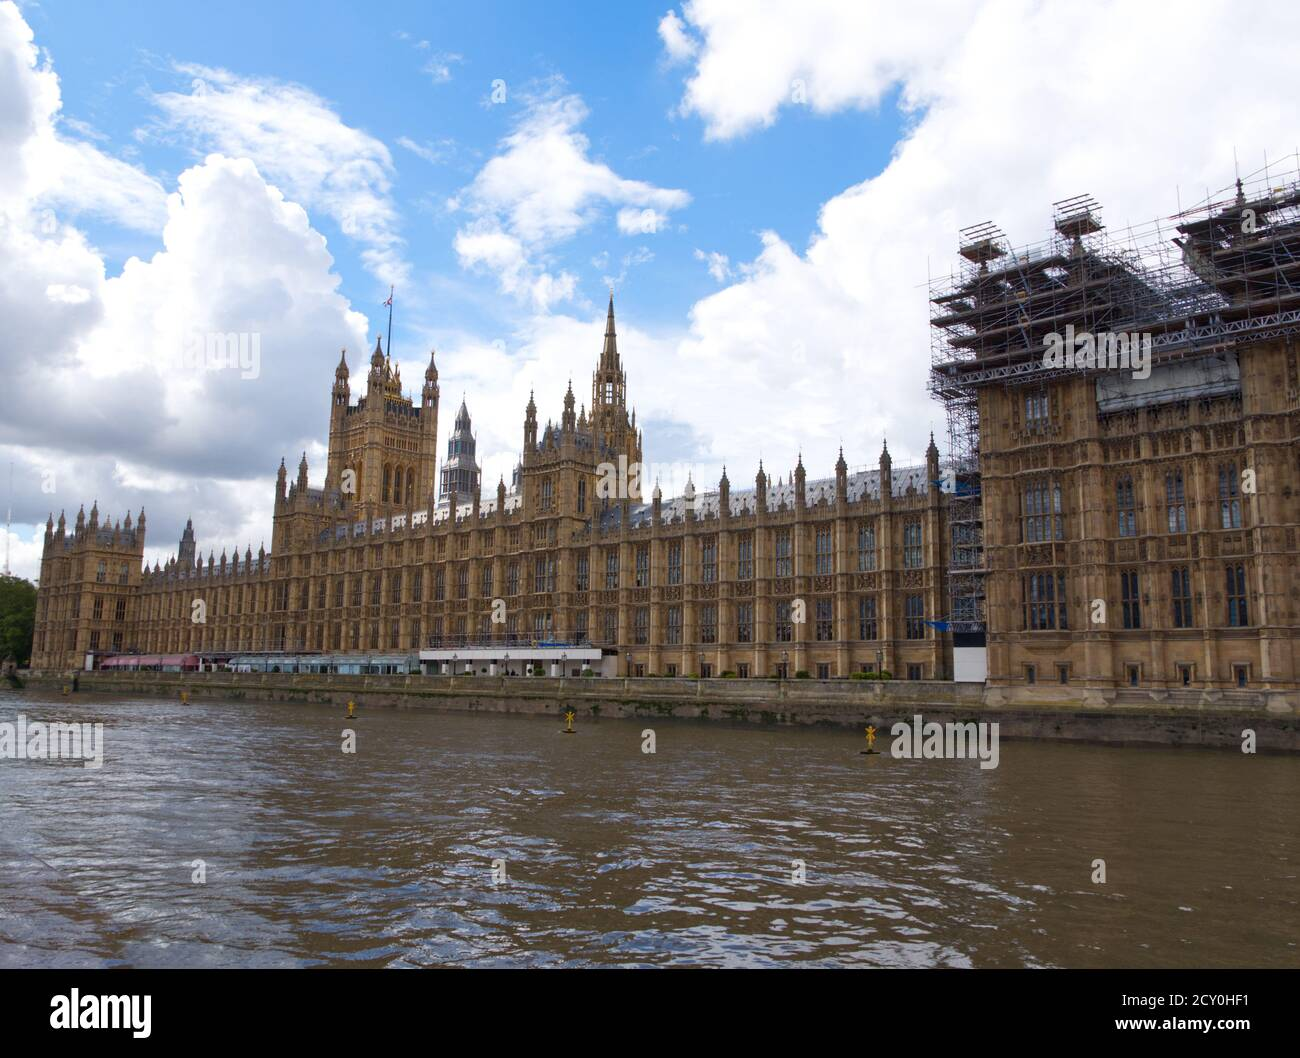 London's Magnificent Houses of Parliament the seat of Englands power. Westminster Palace with Big Ben Tower. House of Commons a Gothic Architecture. Stock Photo